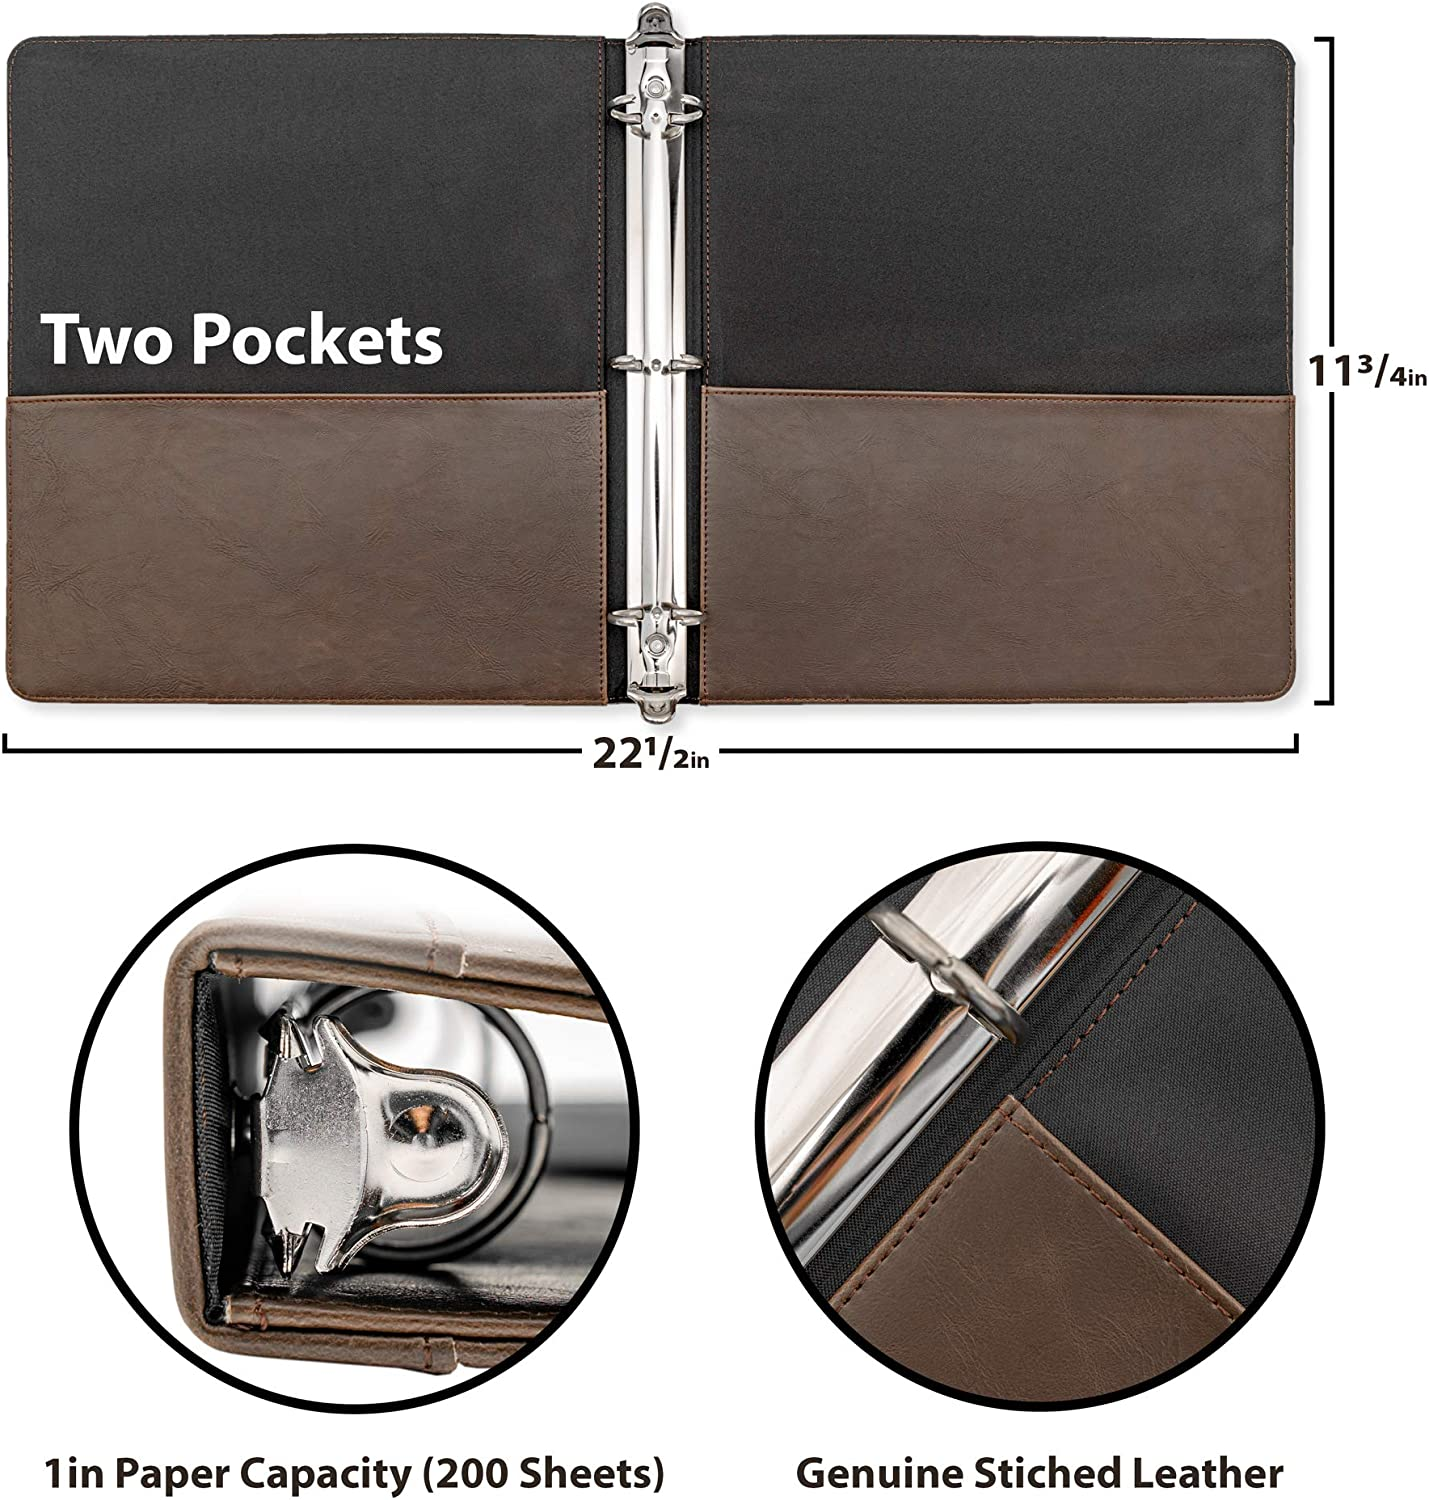 Appearance of Antique Brown Leather 2 Inner Pockets Vintage Professional 3 Ring Binder Organizer 1.6 Spine 1-inch Round Rings 8.5 x 11 Sheet Size